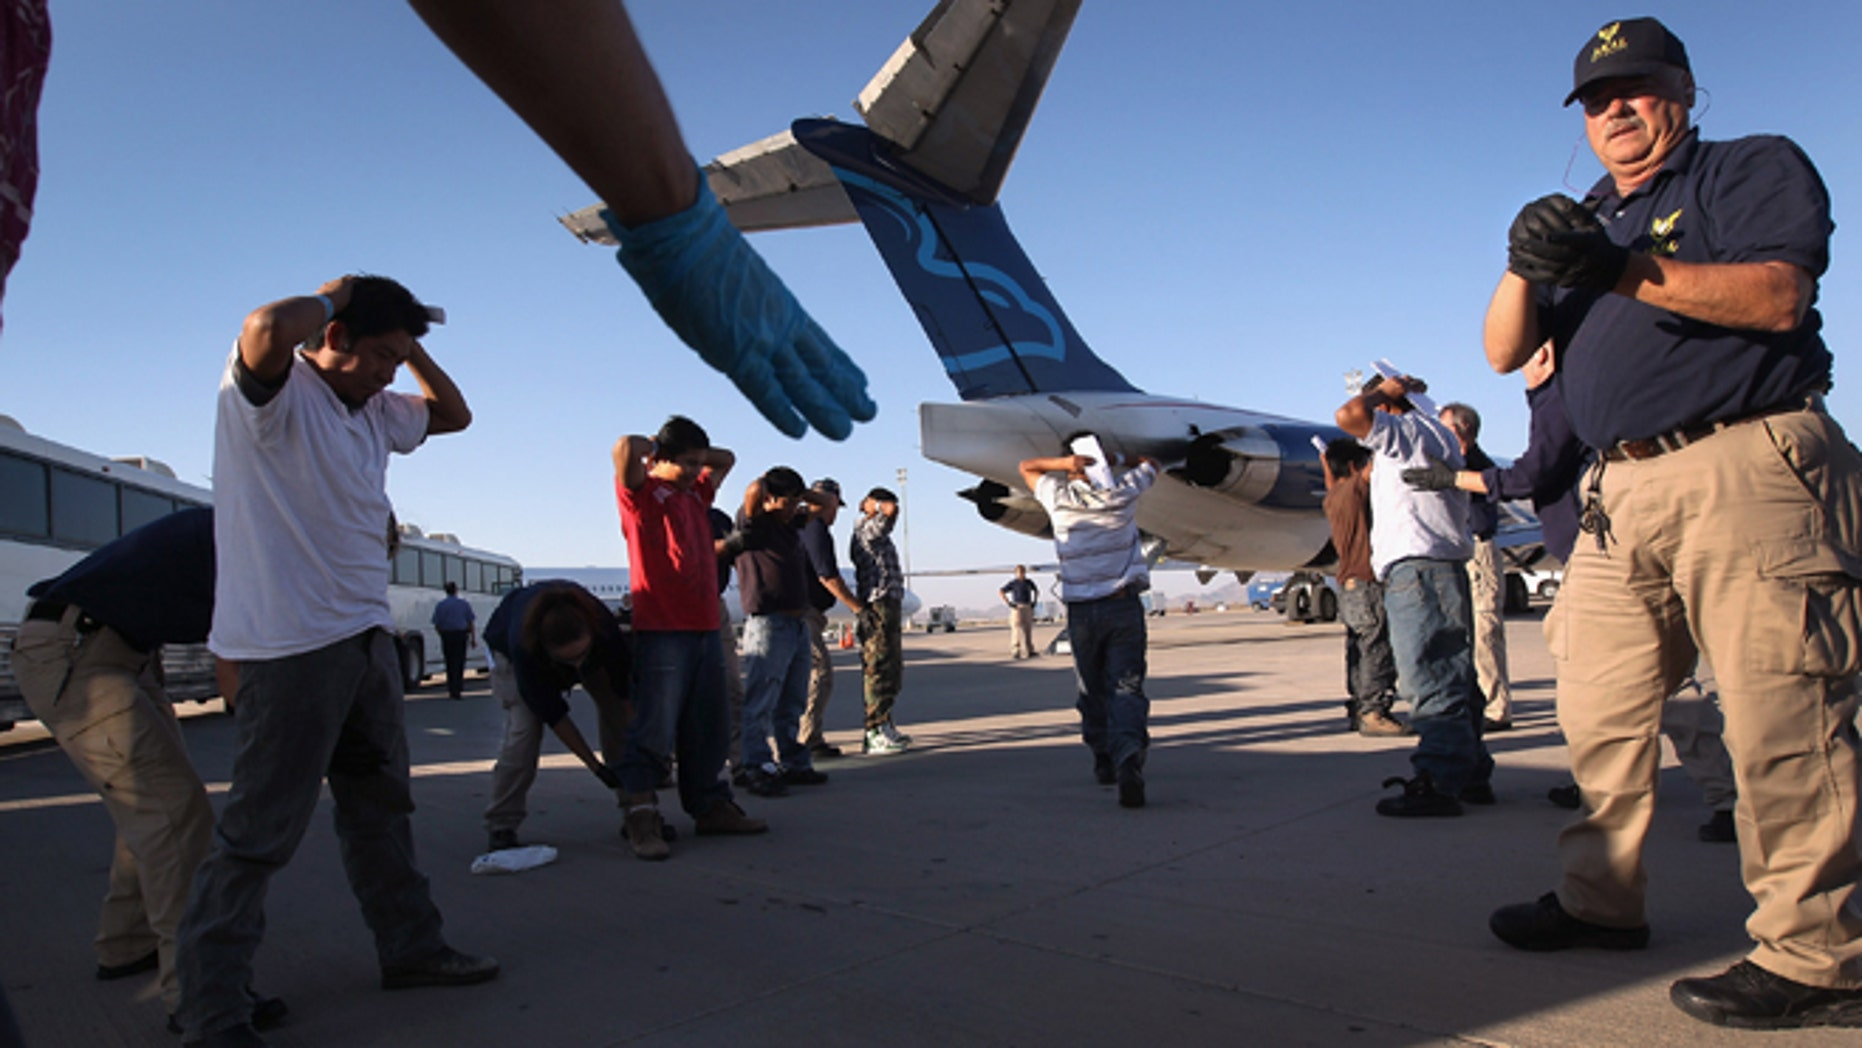 "MESA, AZ - JUNE 24:  Undocumented Guatemalan immigrants are body searched before boarding a deportation flight to Guatemala City, Guatemala at Phoenix-Mesa Gateway Airport on June 24, 2011 in Mesa, Arizona. The U.S. Immigration and Customs Enforcement agency, ICE, repatriates thousands of undocumented Guatemalans monthly, many of whom are caught in the controversial ""Secure Communities"" data-sharing program which puts local police on the frontlines of national immigration enforcement. ICE recently announced a set of adjustments to the federal program after many local communities and some states, including New York, insisted on opting out, saying immigrants were being deported for minor offenses such as traffic violations. Guatemala ranks only second to Mexico in the number of illegal immigrants deported from the United States.  (Photo by John Moore/Getty Images)"